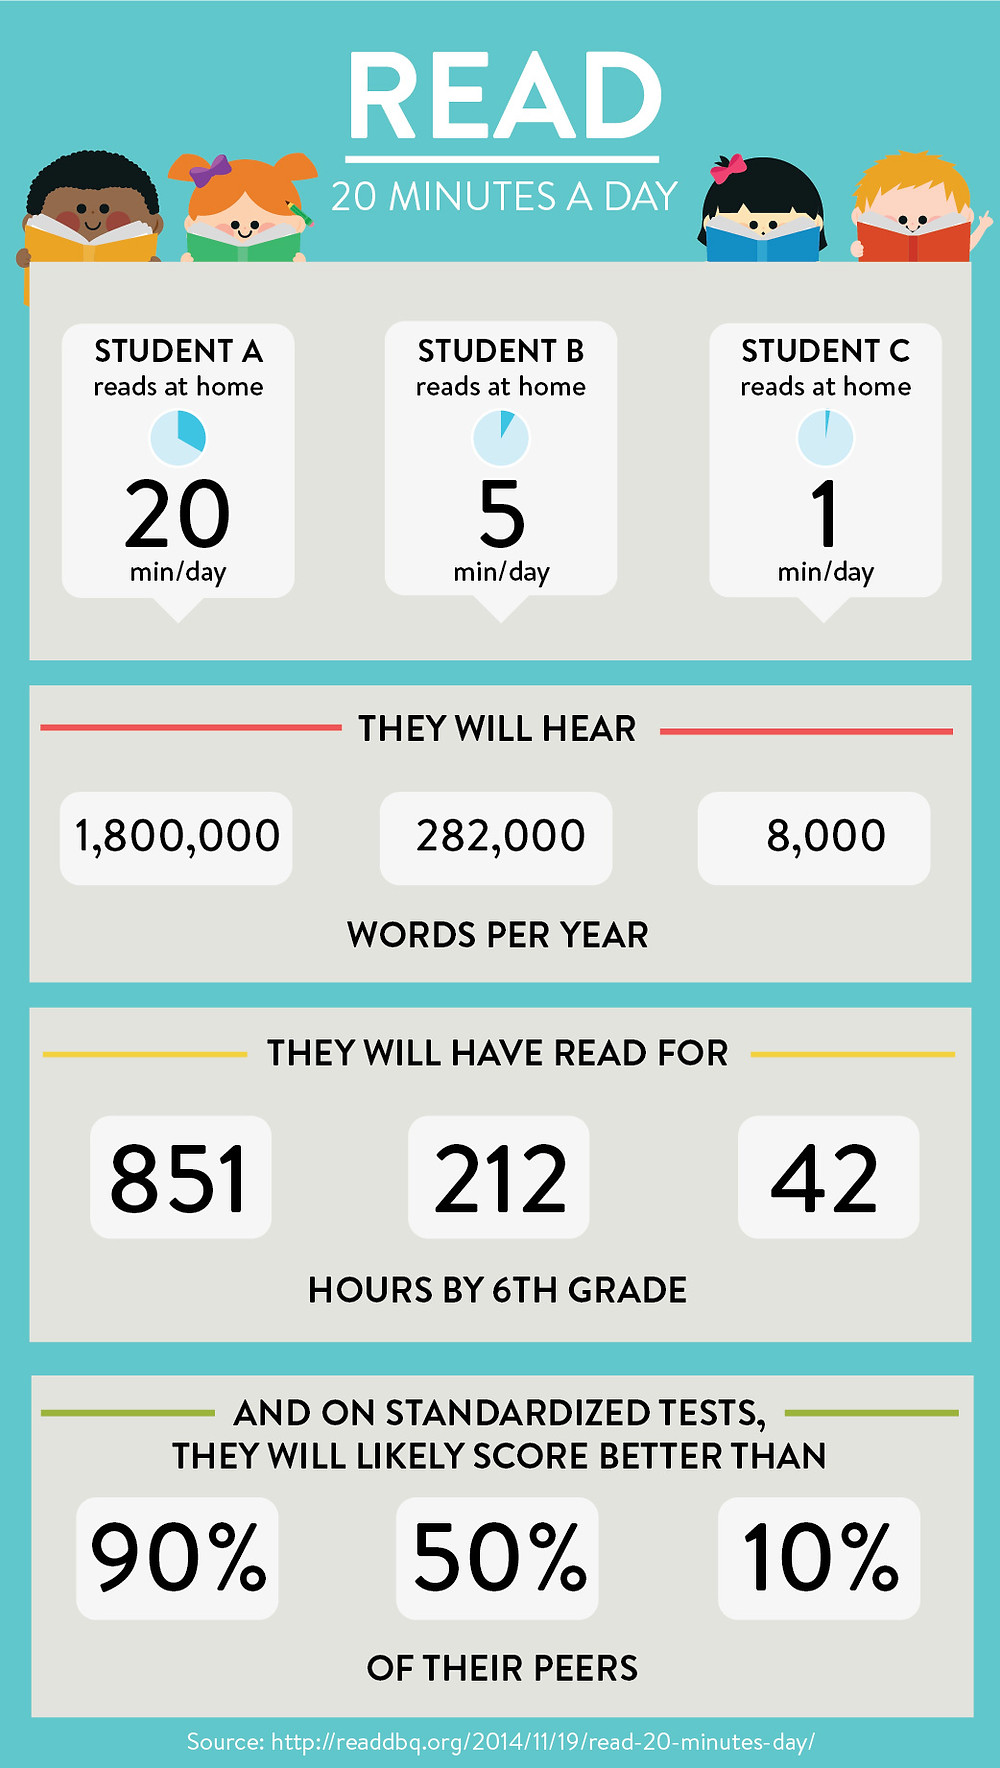 Reading for 20 minutes a day